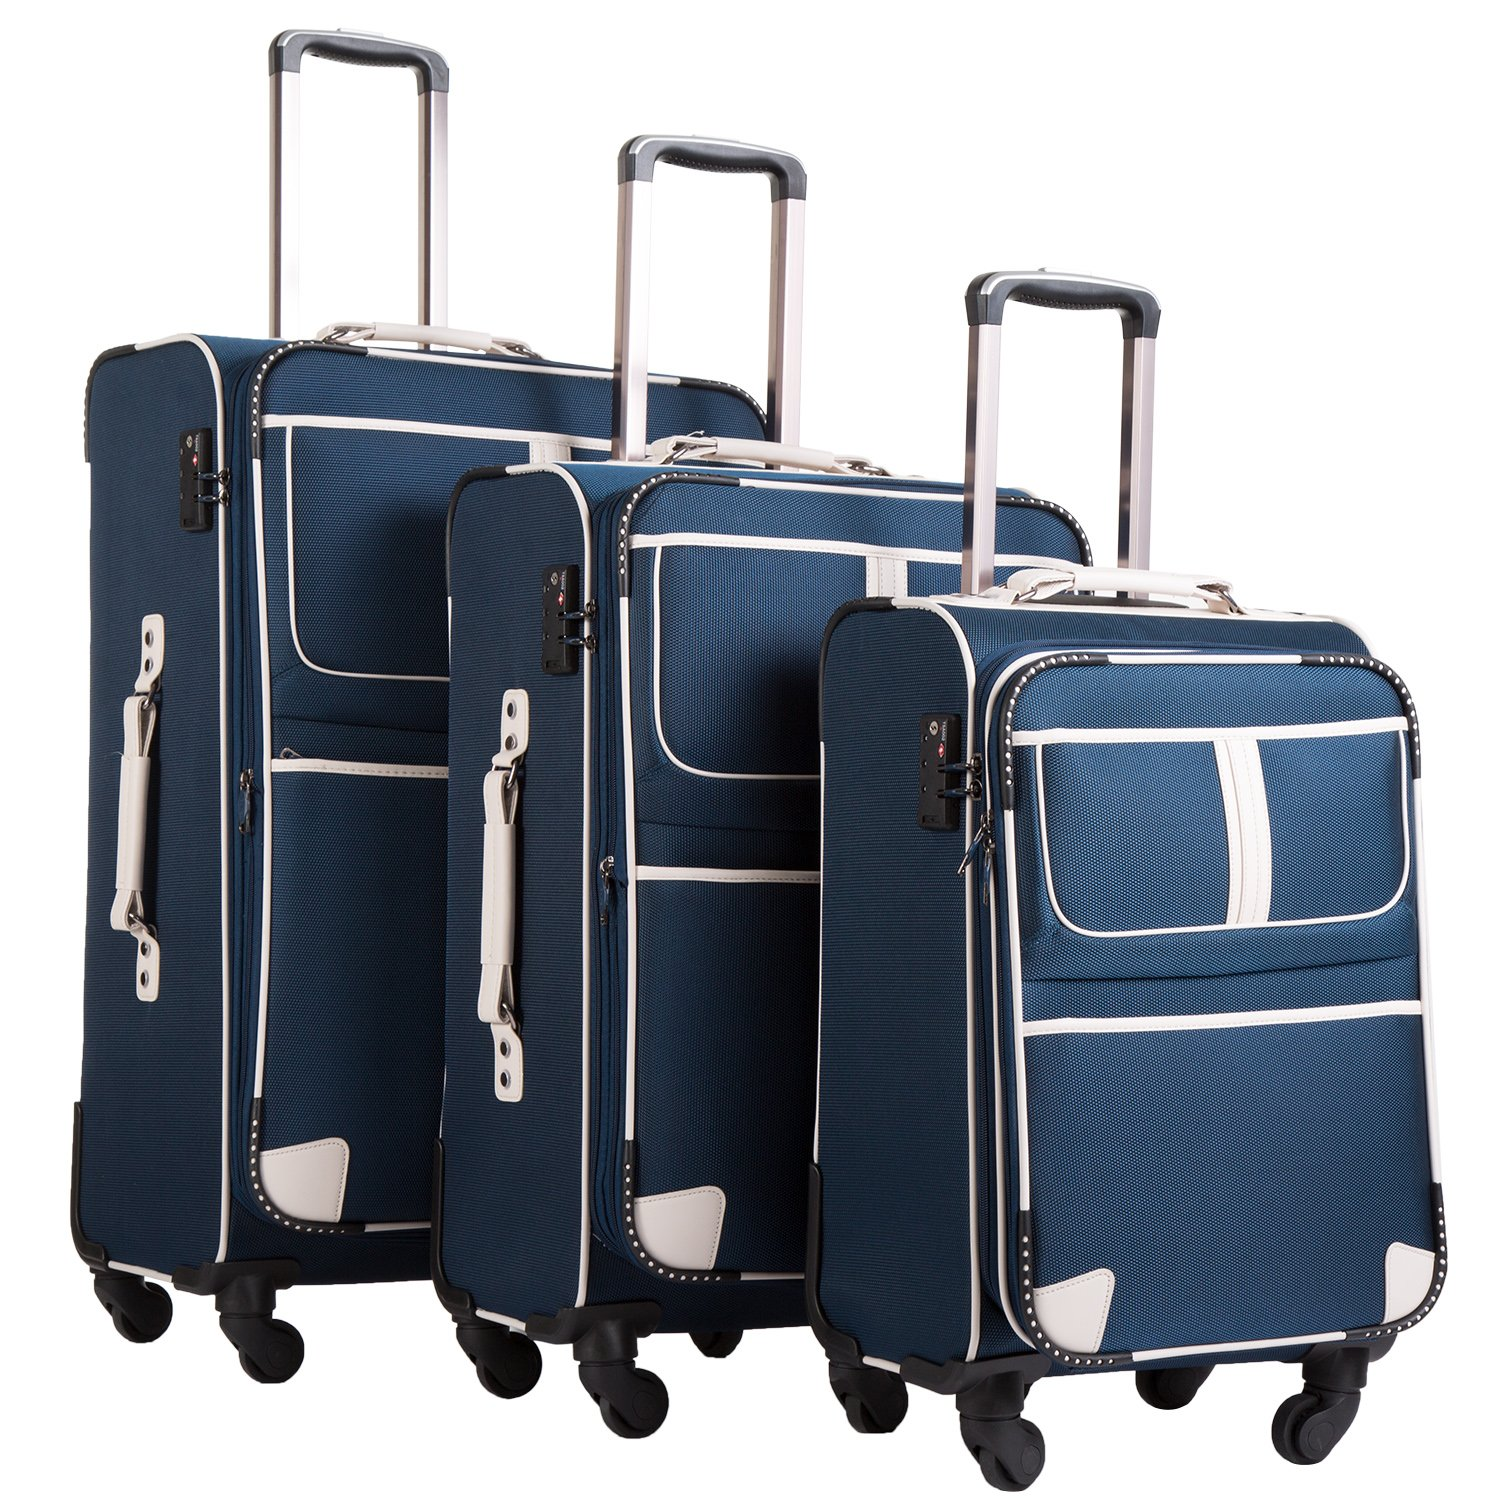 Coolife Luggage 3 Piece Set Suitcase with TSA lock pinner softshell 20in24in28in (Navy.) by COOLIFE